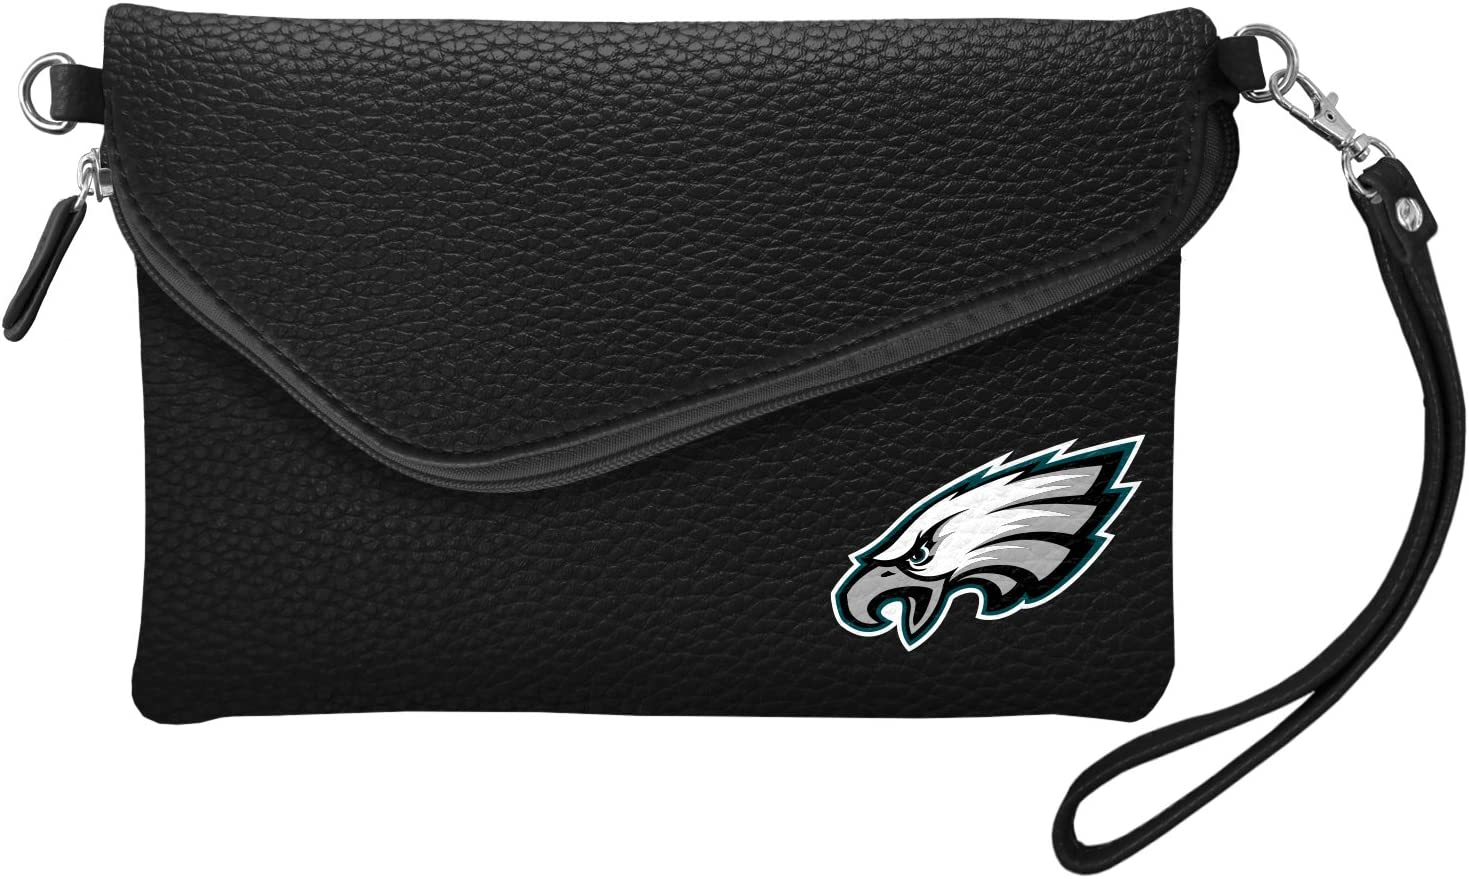 Littlearth NFL Womens NFL Fold Over Crossbody Pebble Purse